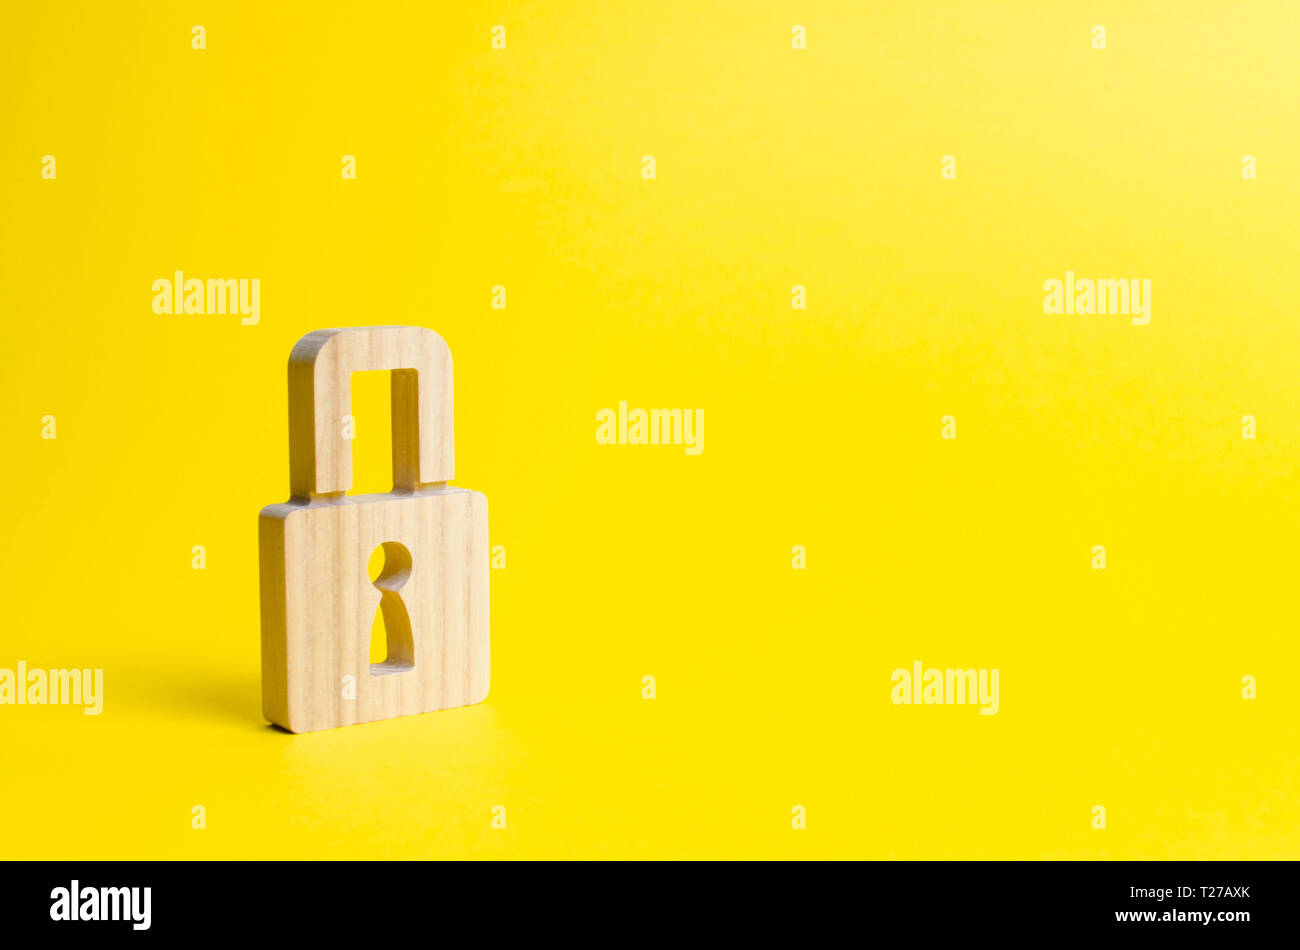 A padlock on a yellow background. information safty. concept of the preservation of secrets, information and values. Hacking attack, hacking. Protecti - Stock Image